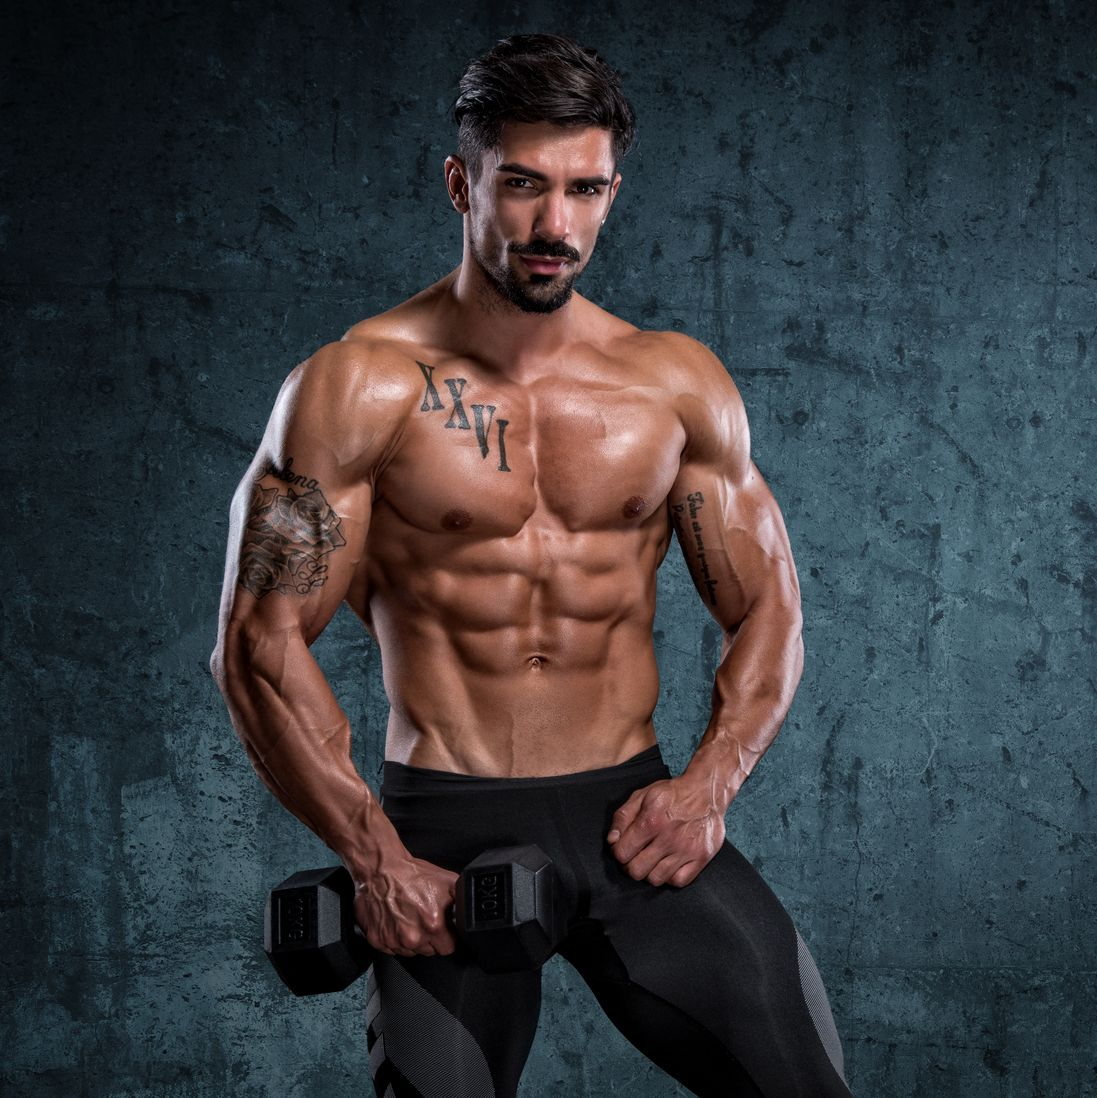 10 Core Moves You Can Do With 1 Dumbbell